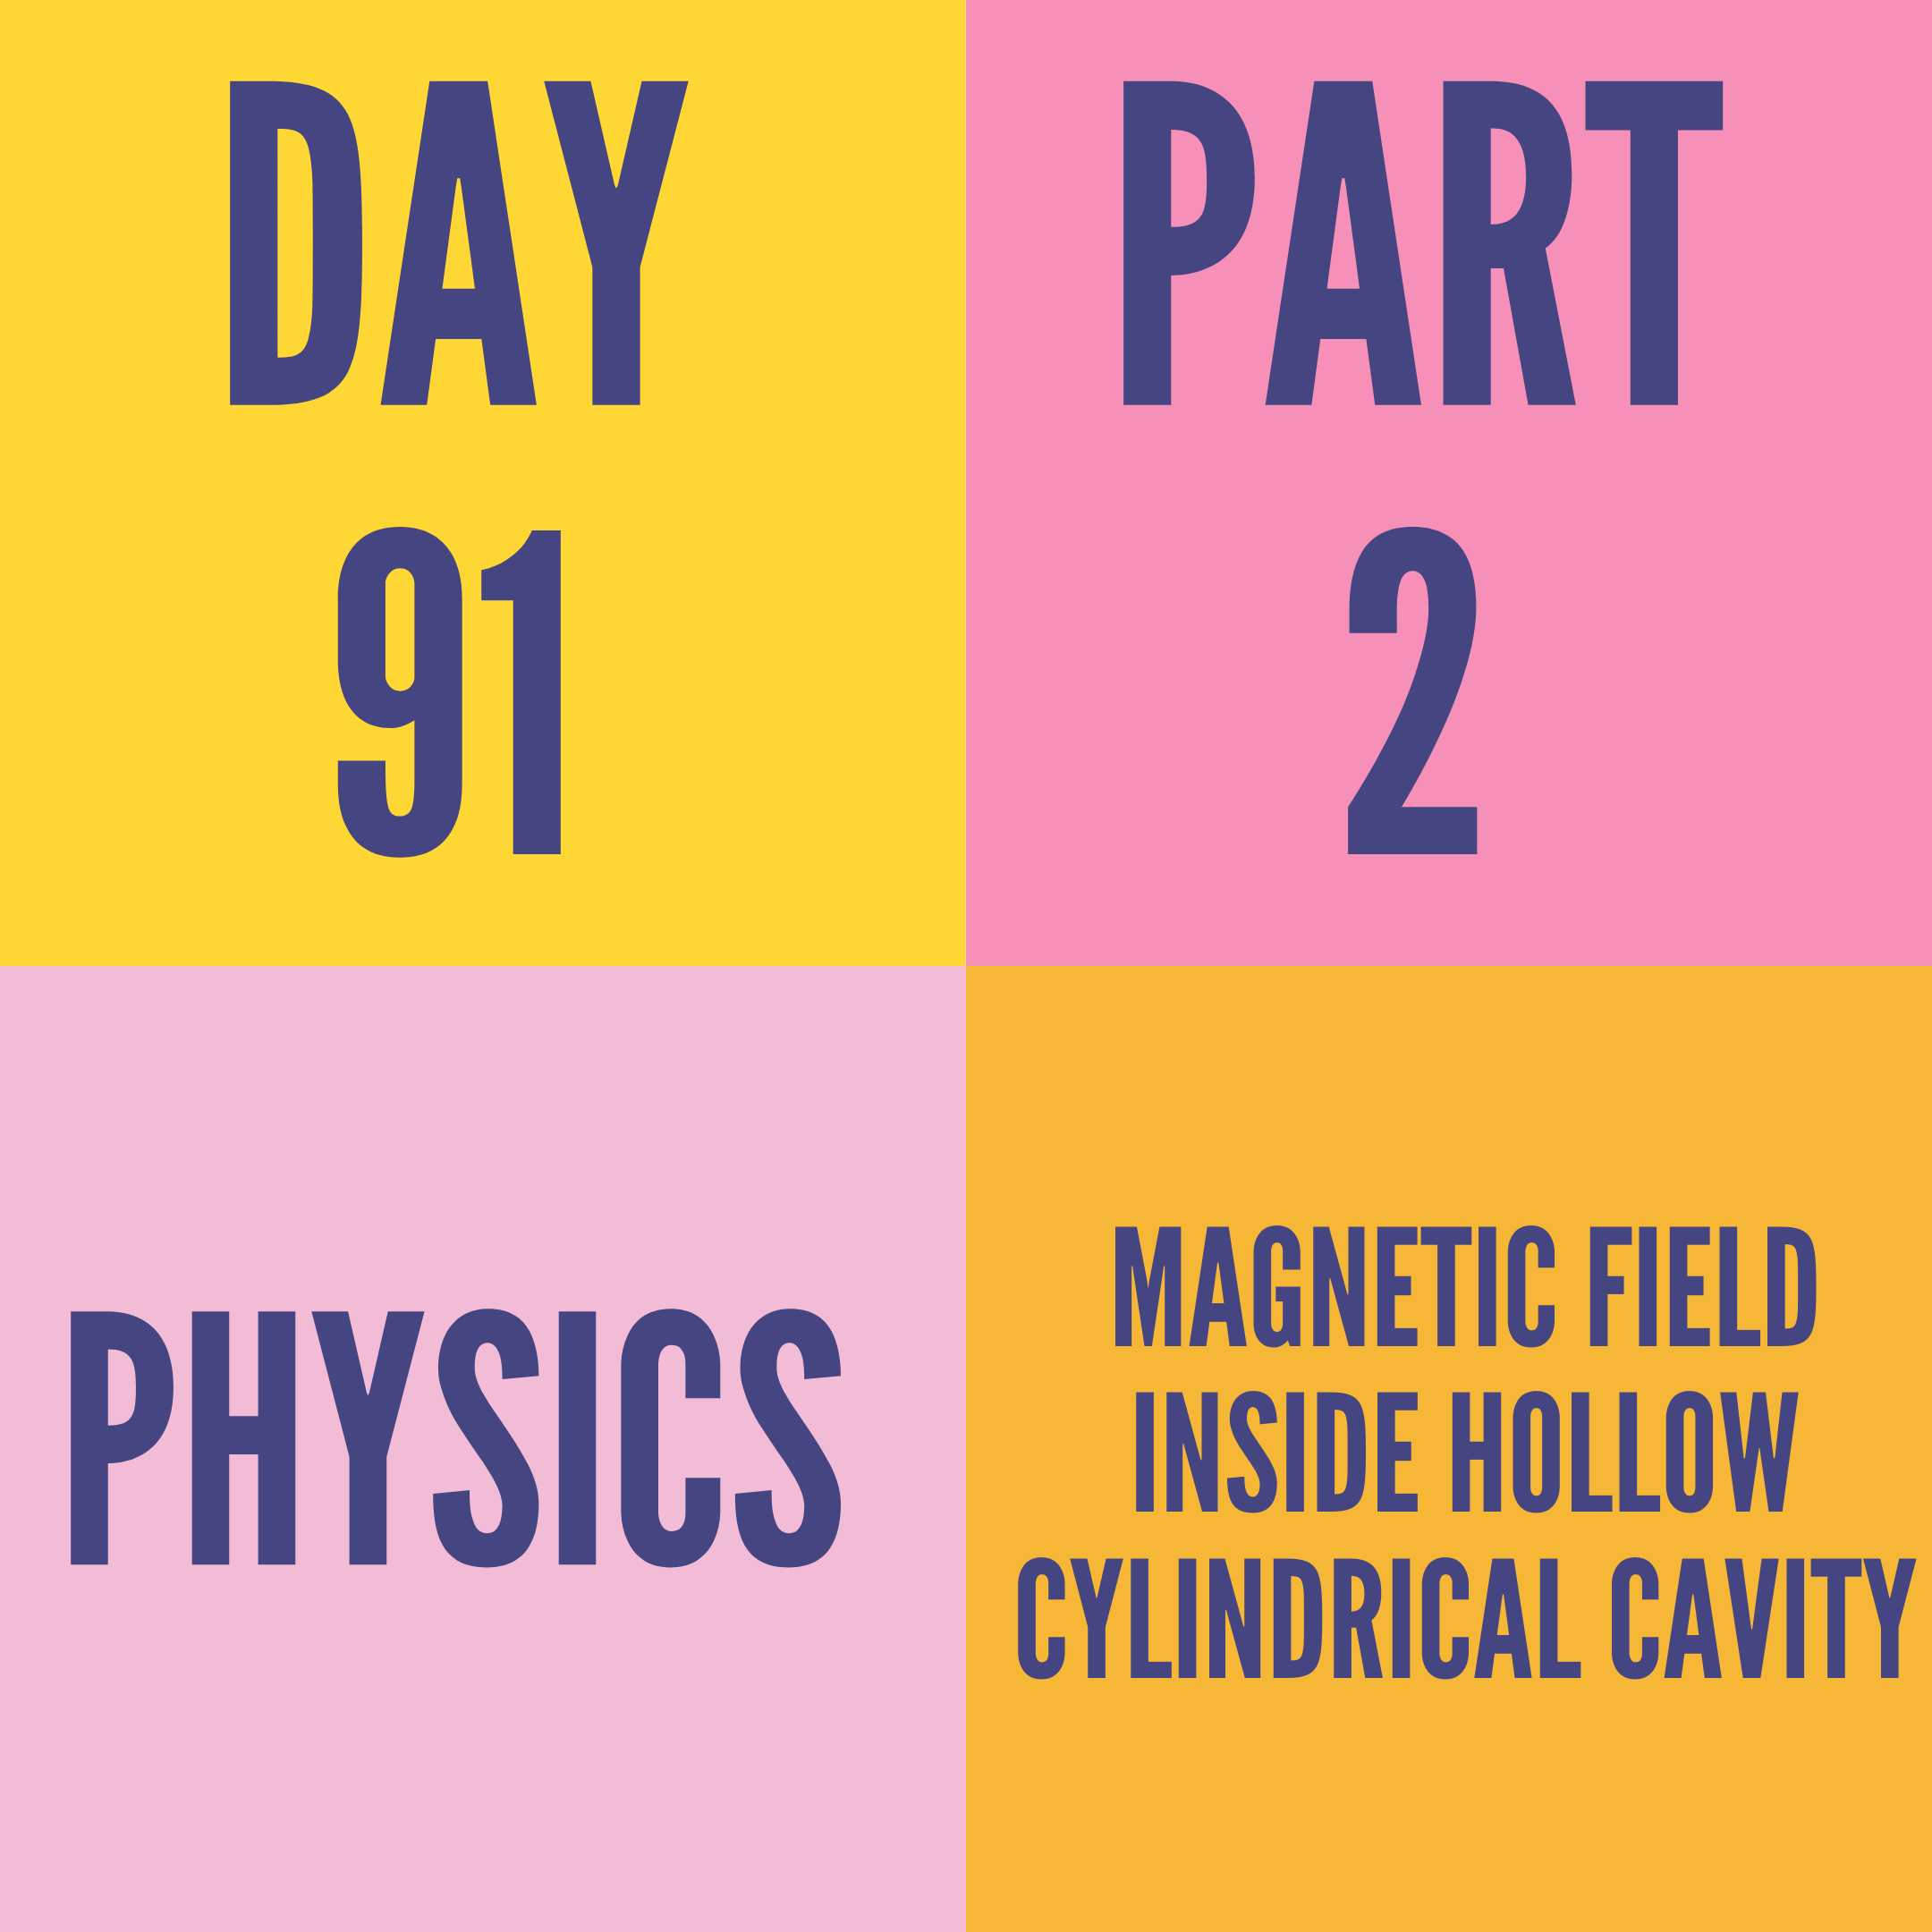 DAY-91 PART-2 MAGNETIC FIELD INSIDE HOLLOW CYLINDRICAL CAVITY